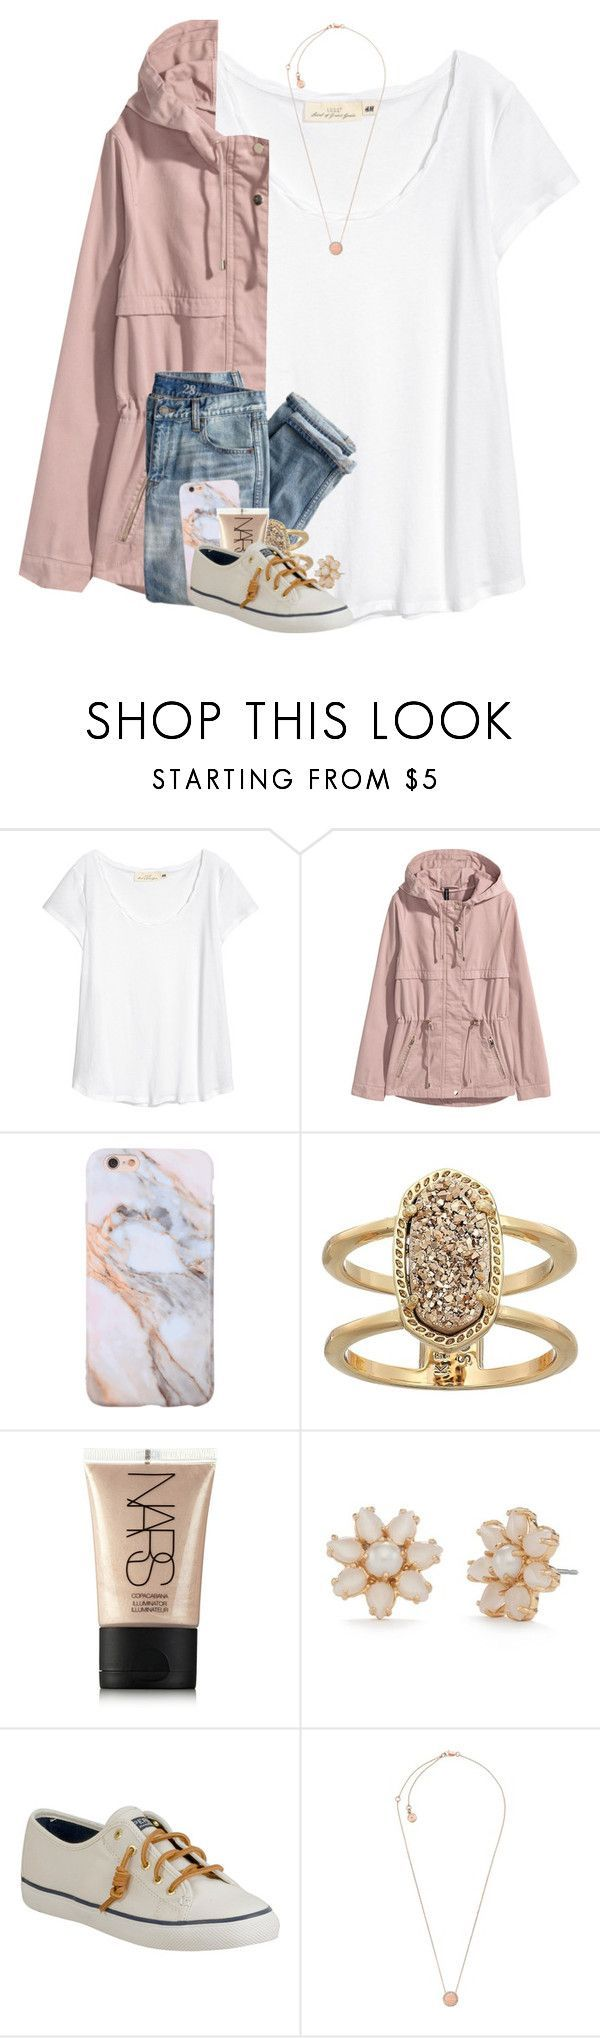 """i'm sick "" by madelinelurene ❤ liked on Polyvore featuring H&M, J.Crew, Kendra Scott, NARS Cosmetics, Kate Spade, Sperry and Michael Kors"